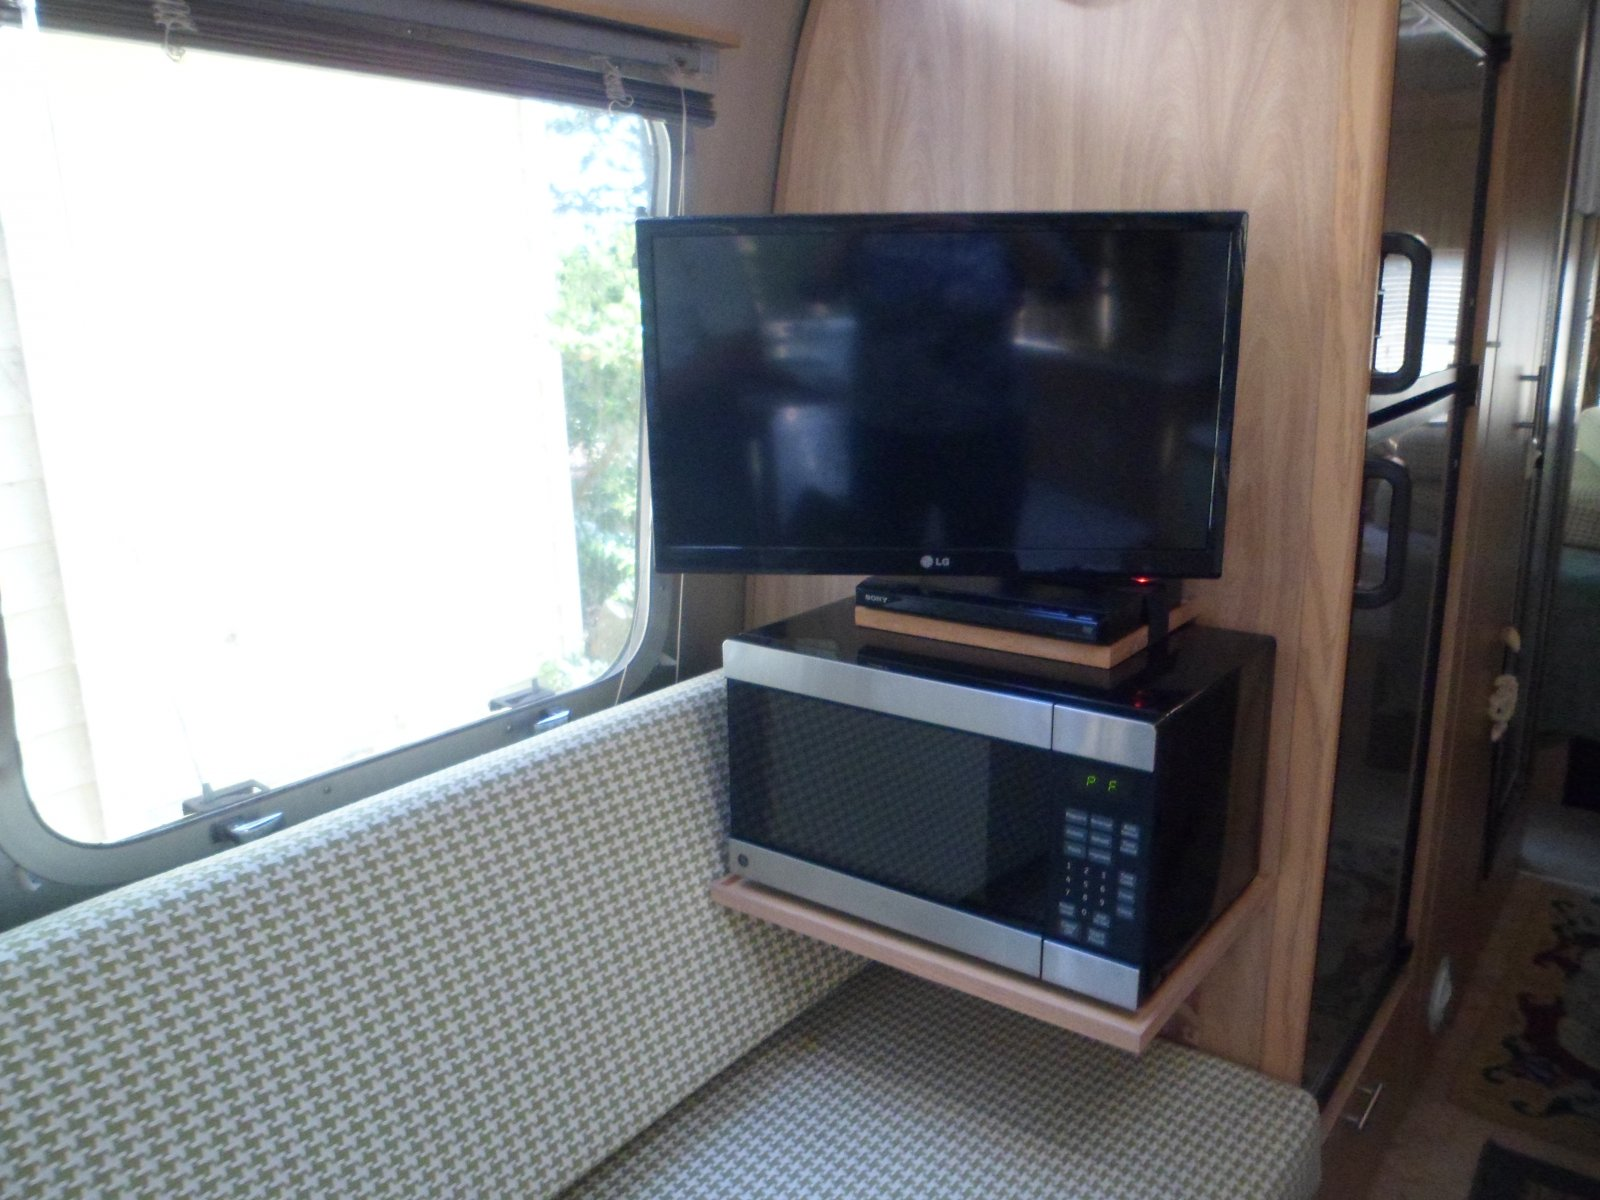 Click image for larger version  Name:Airstream Microwave 4-27-2014 001.jpg Views:148 Size:244.9 KB ID:215861